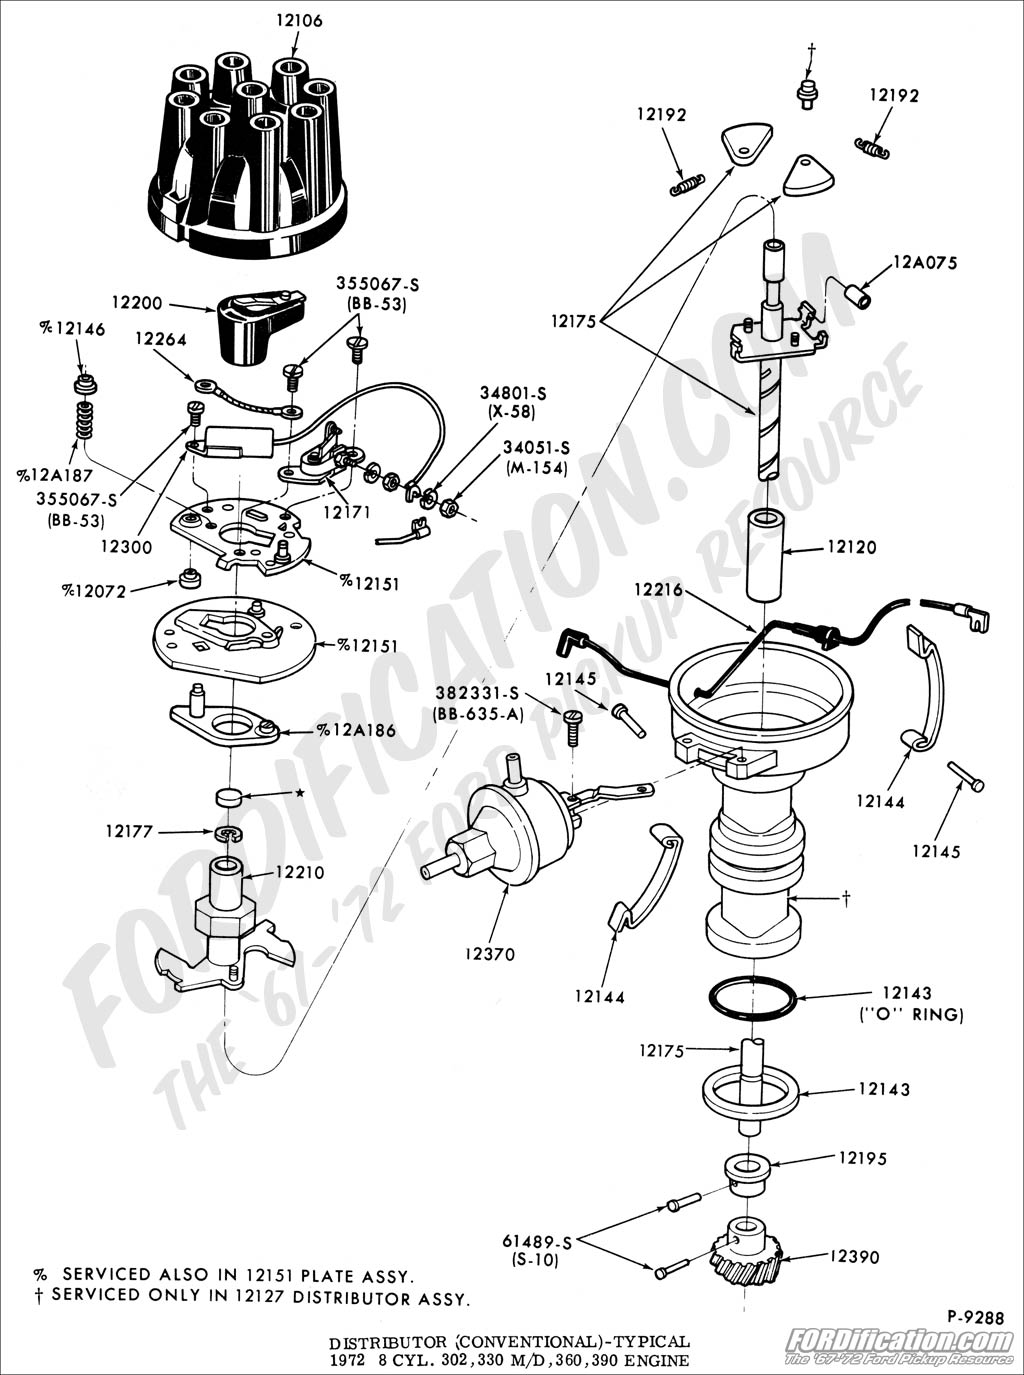 distributor_V8 02 ford truck technical drawings and schematics section i ford 390 engine wiring diagram at bakdesigns.co